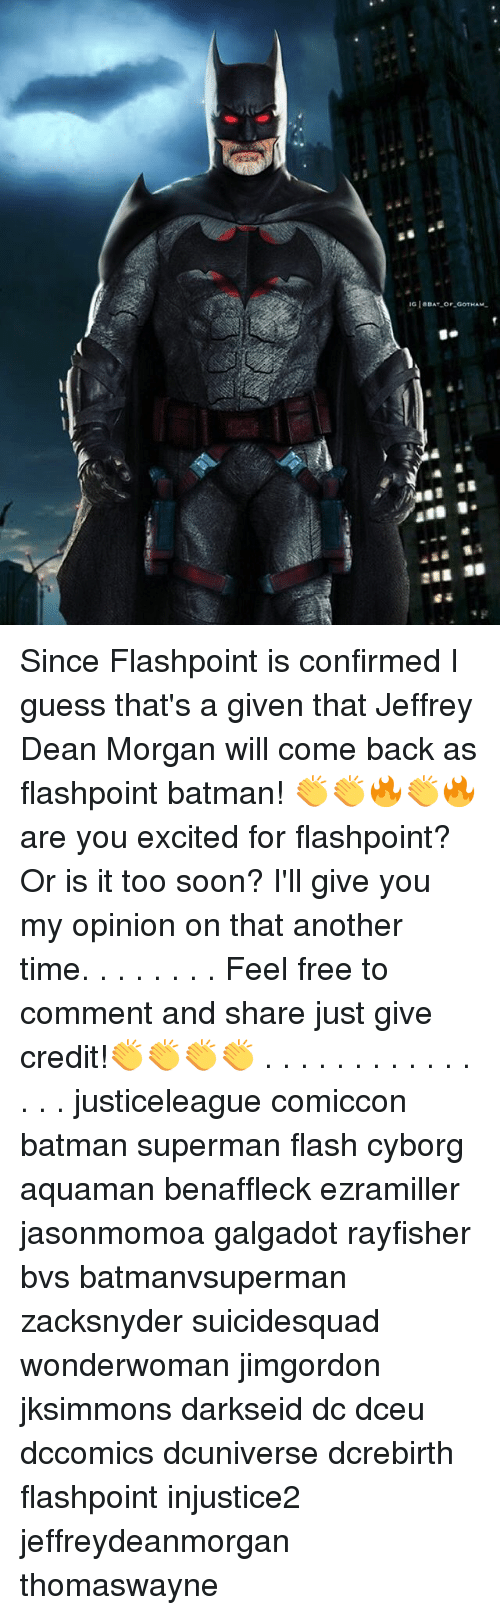 Feeling Free: Since Flashpoint is confirmed I guess that's a given that Jeffrey Dean Morgan will come back as flashpoint batman! 👏👏🔥👏🔥 are you excited for flashpoint? Or is it too soon? I'll give you my opinion on that another time. . . . . . . . Feel free to comment and share just give credit!👏👏👏👏 . . . . . . . . . . . . . . . justiceleague comiccon batman superman flash cyborg aquaman benaffleck ezramiller jasonmomoa galgadot rayfisher bvs batmanvsuperman zacksnyder suicidesquad wonderwoman jimgordon jksimmons darkseid dc dceu dccomics dcuniverse dcrebirth flashpoint injustice2 jeffreydeanmorgan thomaswayne